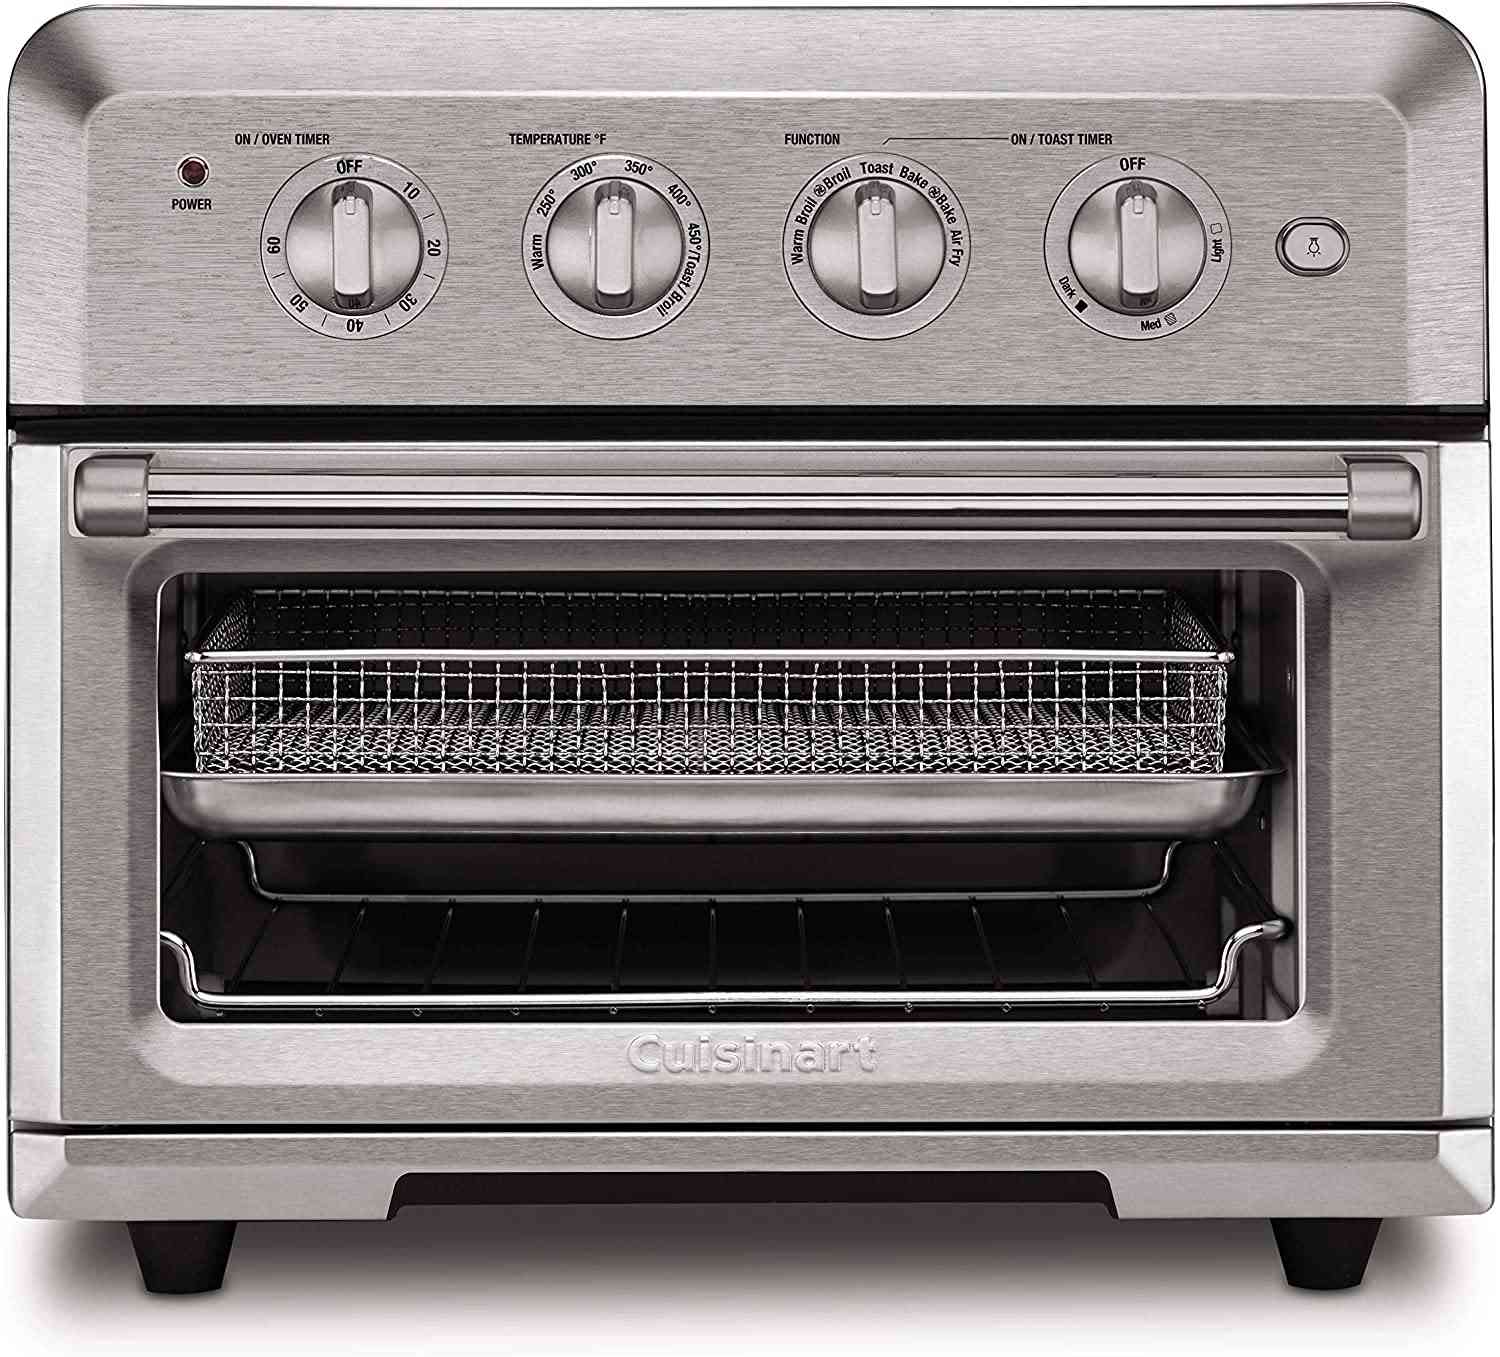 Cuisinart-CTOA-122-Convection-Toaster-Oven-with-Airfryer